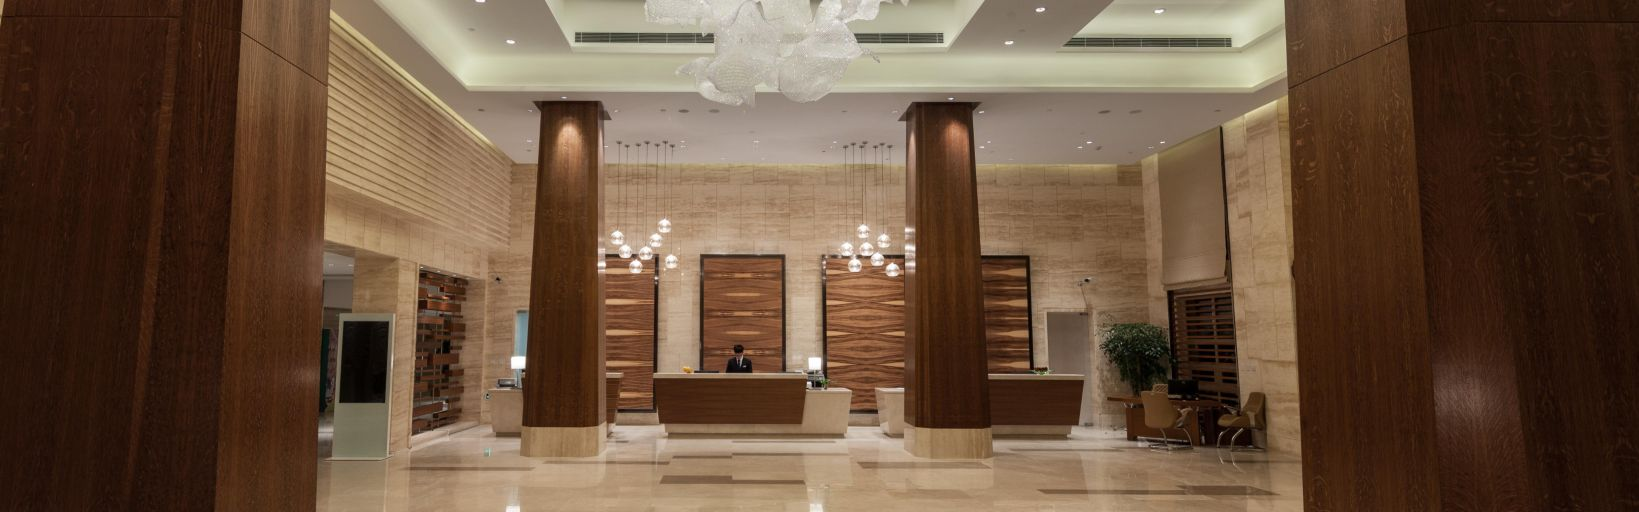 Holiday Inn Qingdao Expo Hotel by IHG